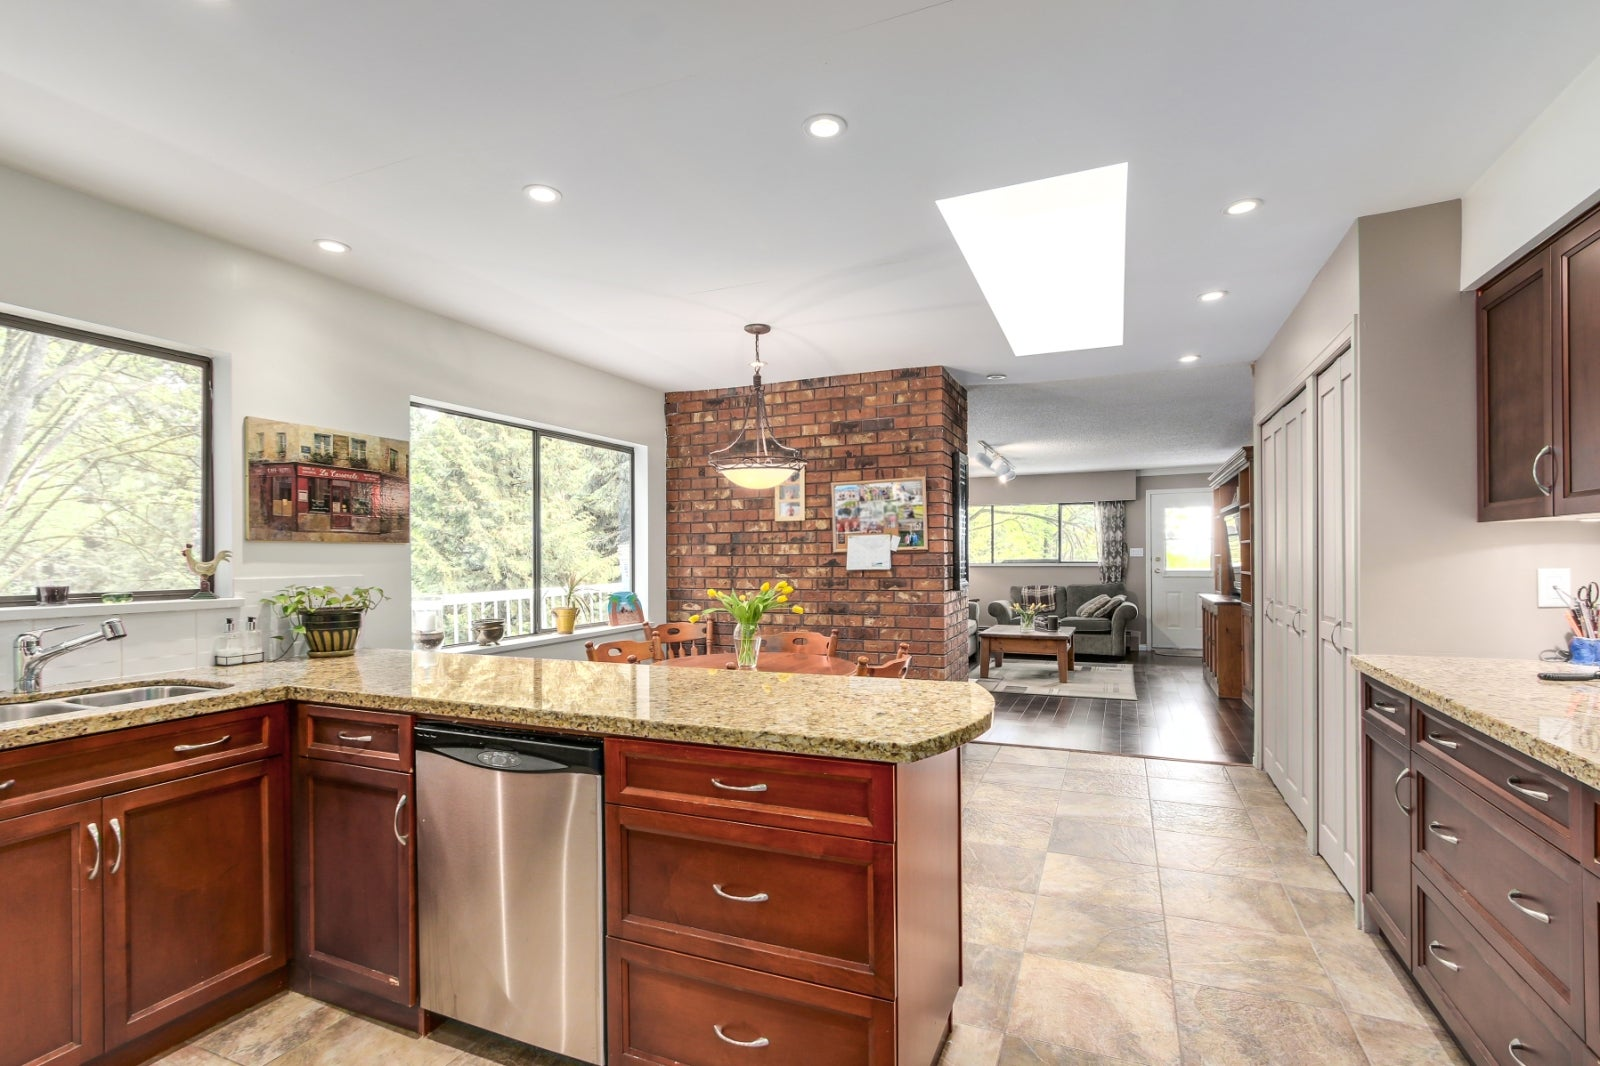 4678 CARSON STREET - South Slope House/Single Family for sale, 5 Bedrooms (R2162406) #9